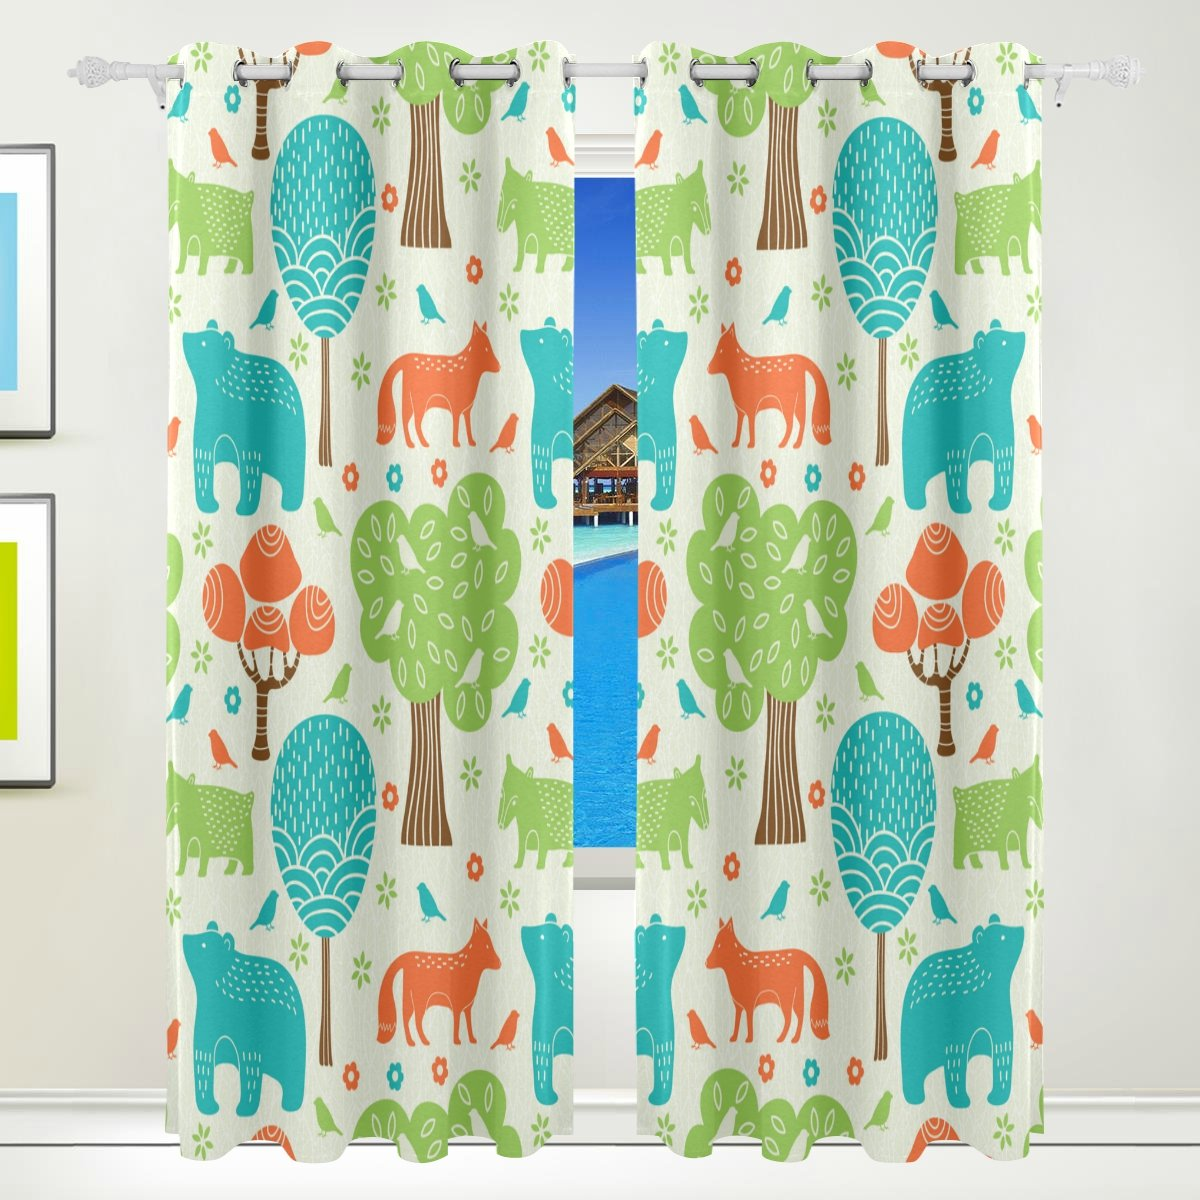 Vantaso Window Curtains 84 Inch Long Forest Animals Fox Bear Blue Green for Kids Girls Boys Bedroom Living Room Polyester 2 Pannels